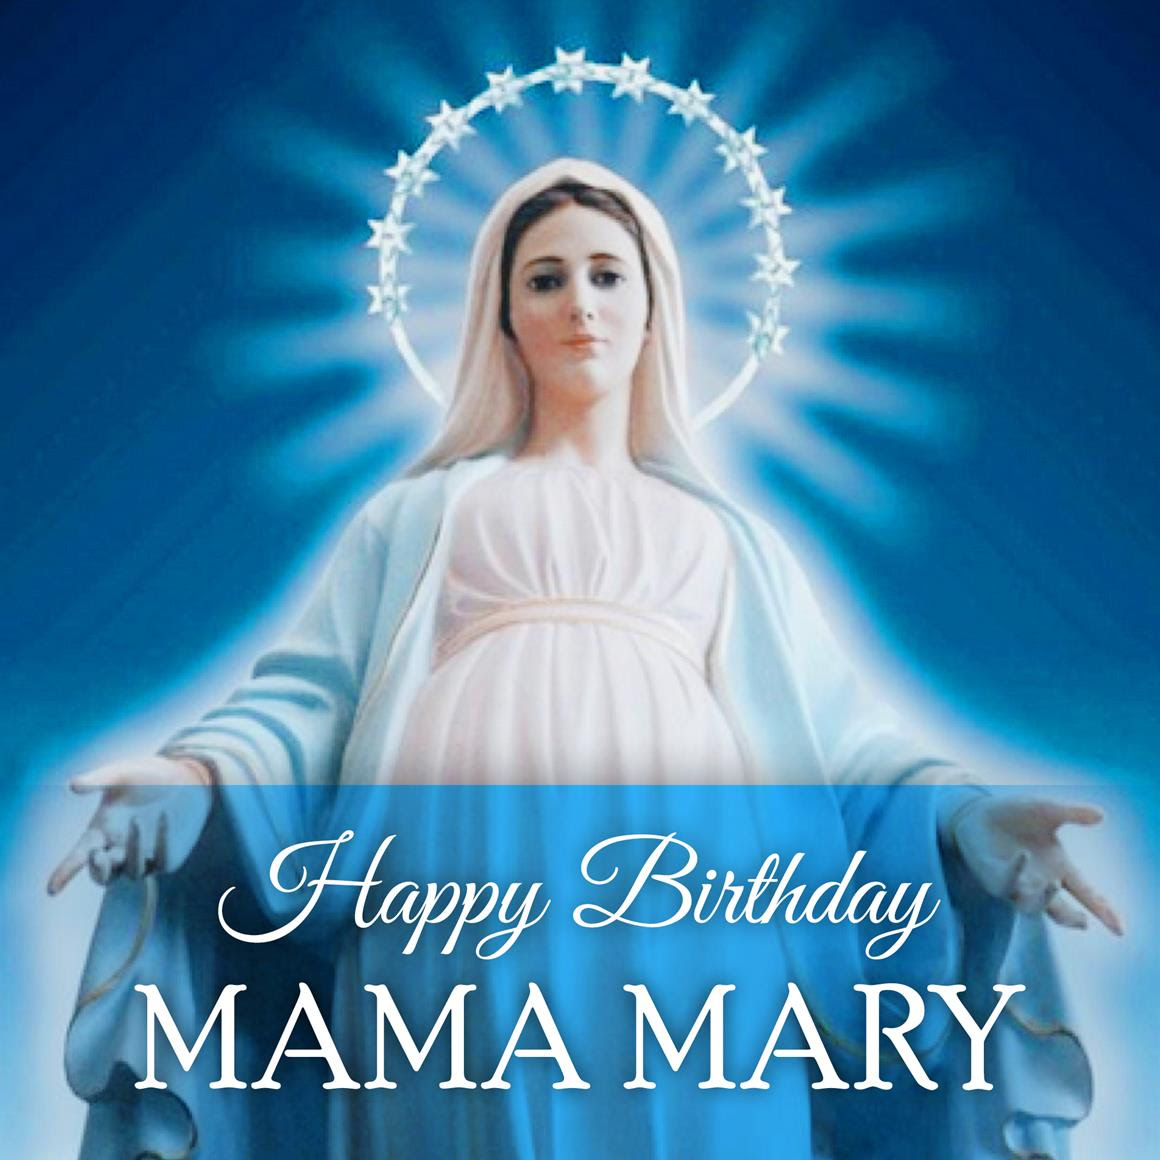 San Lorenzo Ruiz Parish Happy Birthday Mama Mary